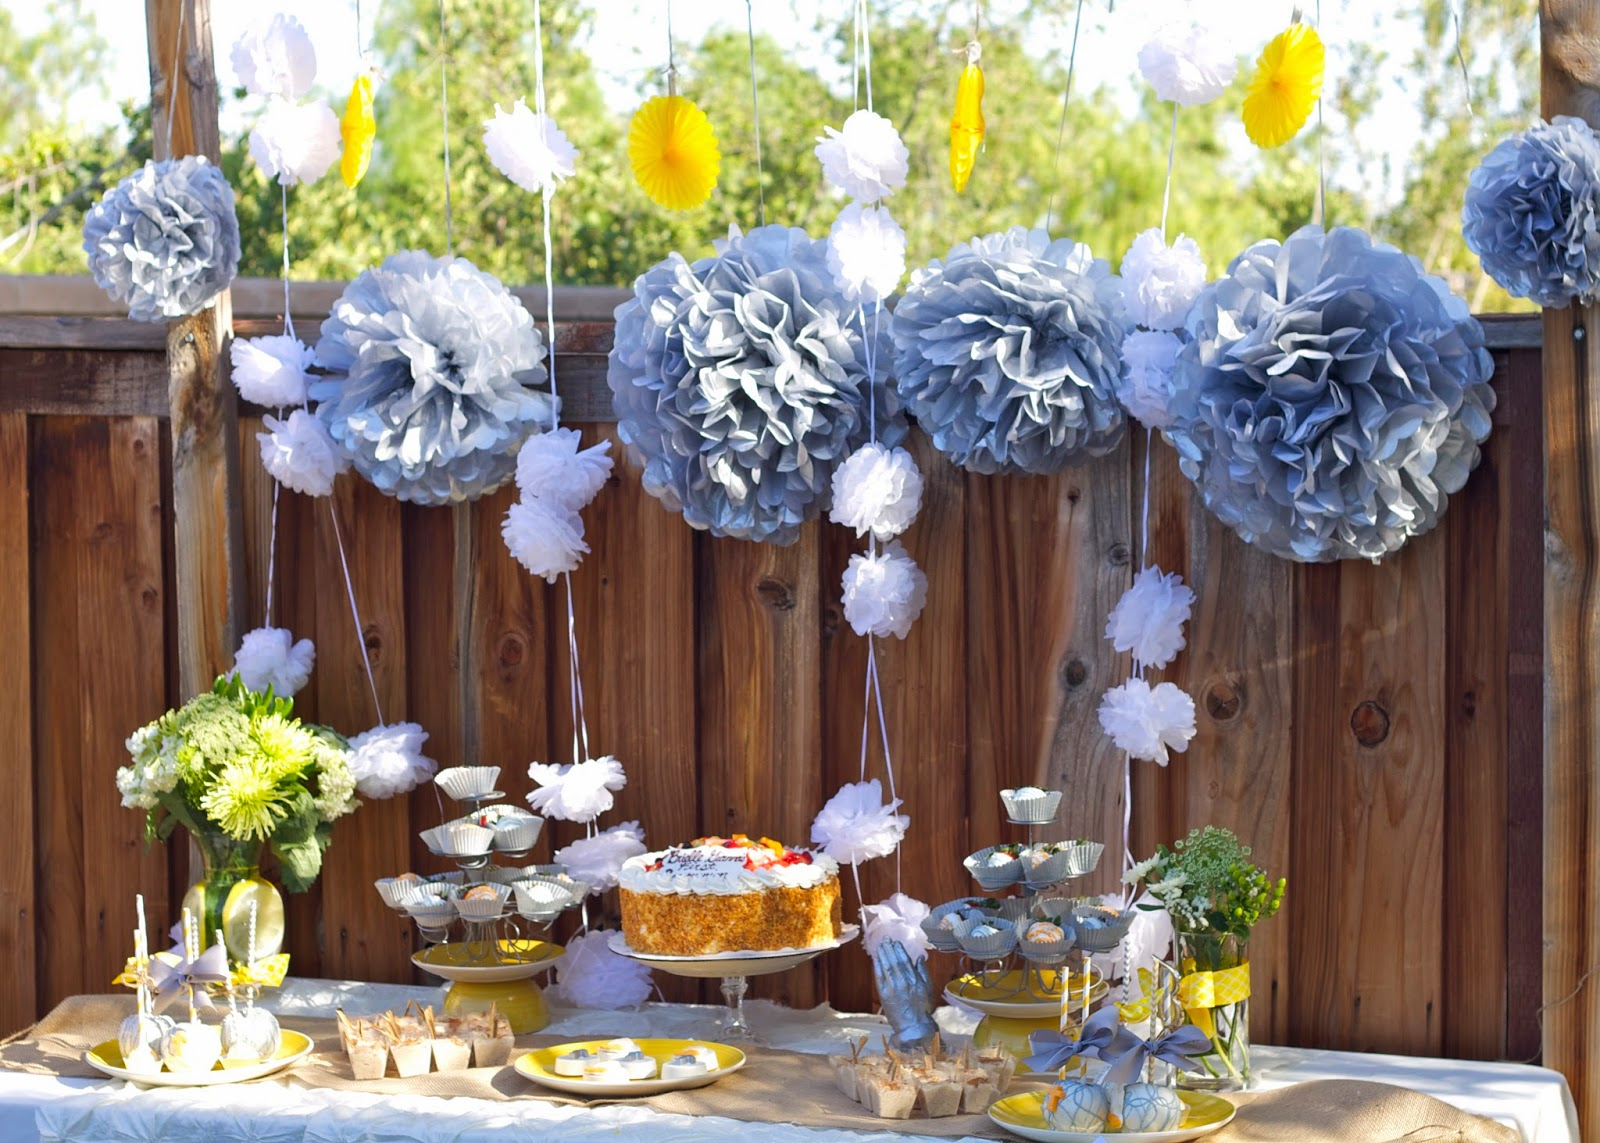 Yellow and Gray Dessert Table, Yellow and Gray decorated Dessert Table, Yellow and Gray CakeTable